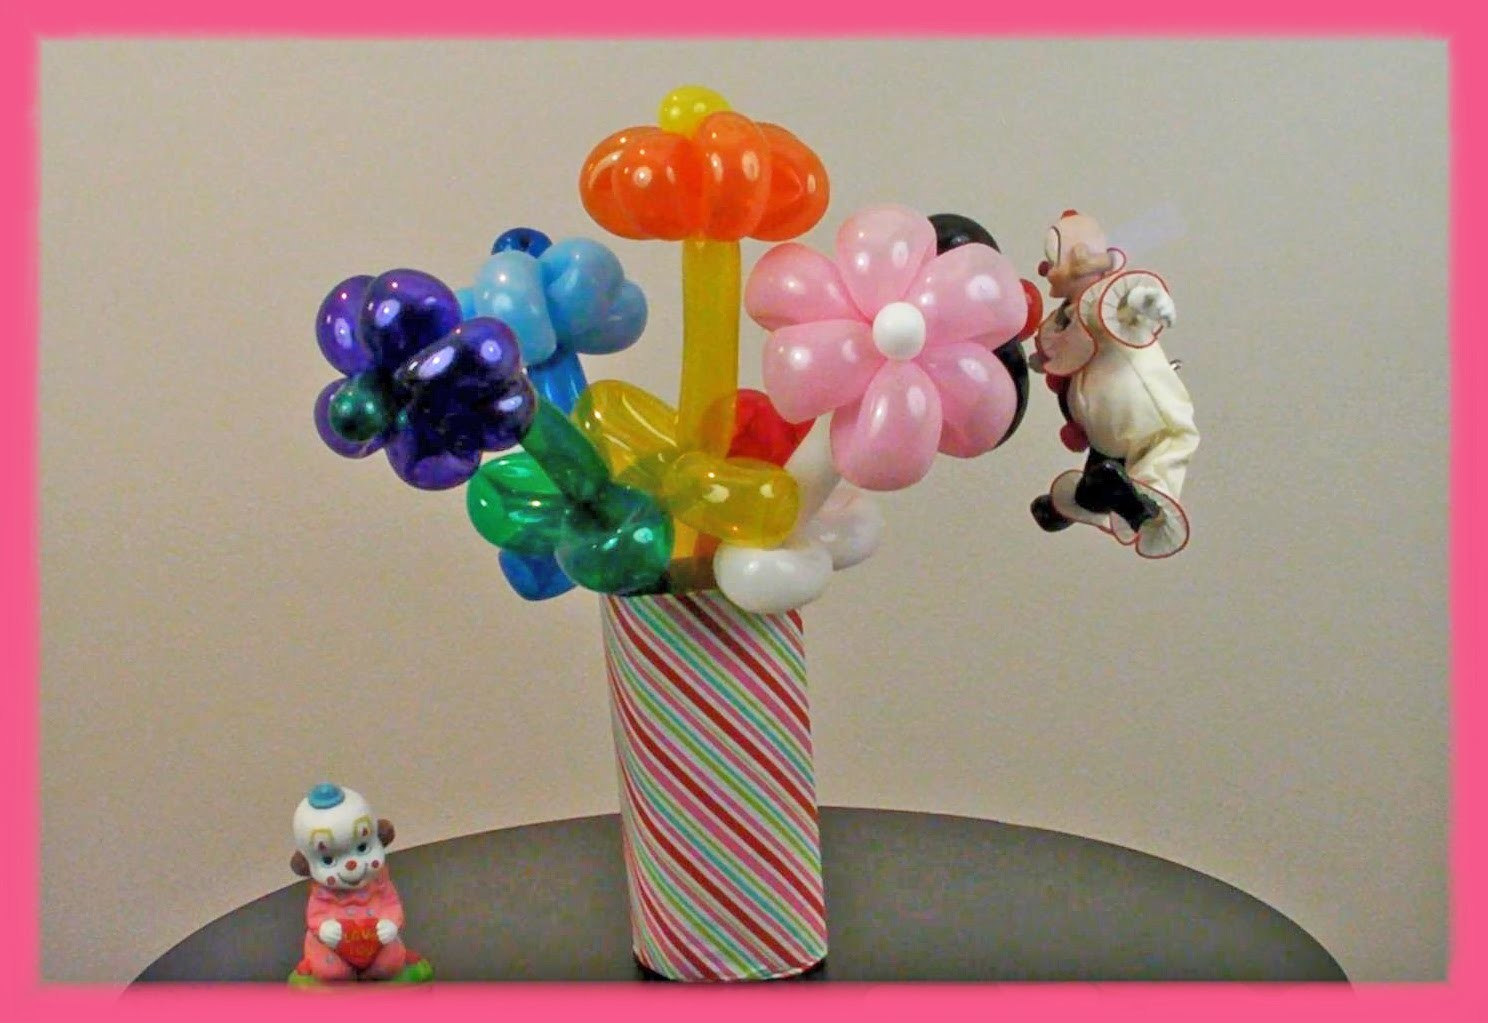 Tutorial: How To Make a Flower Balloon Bouquet